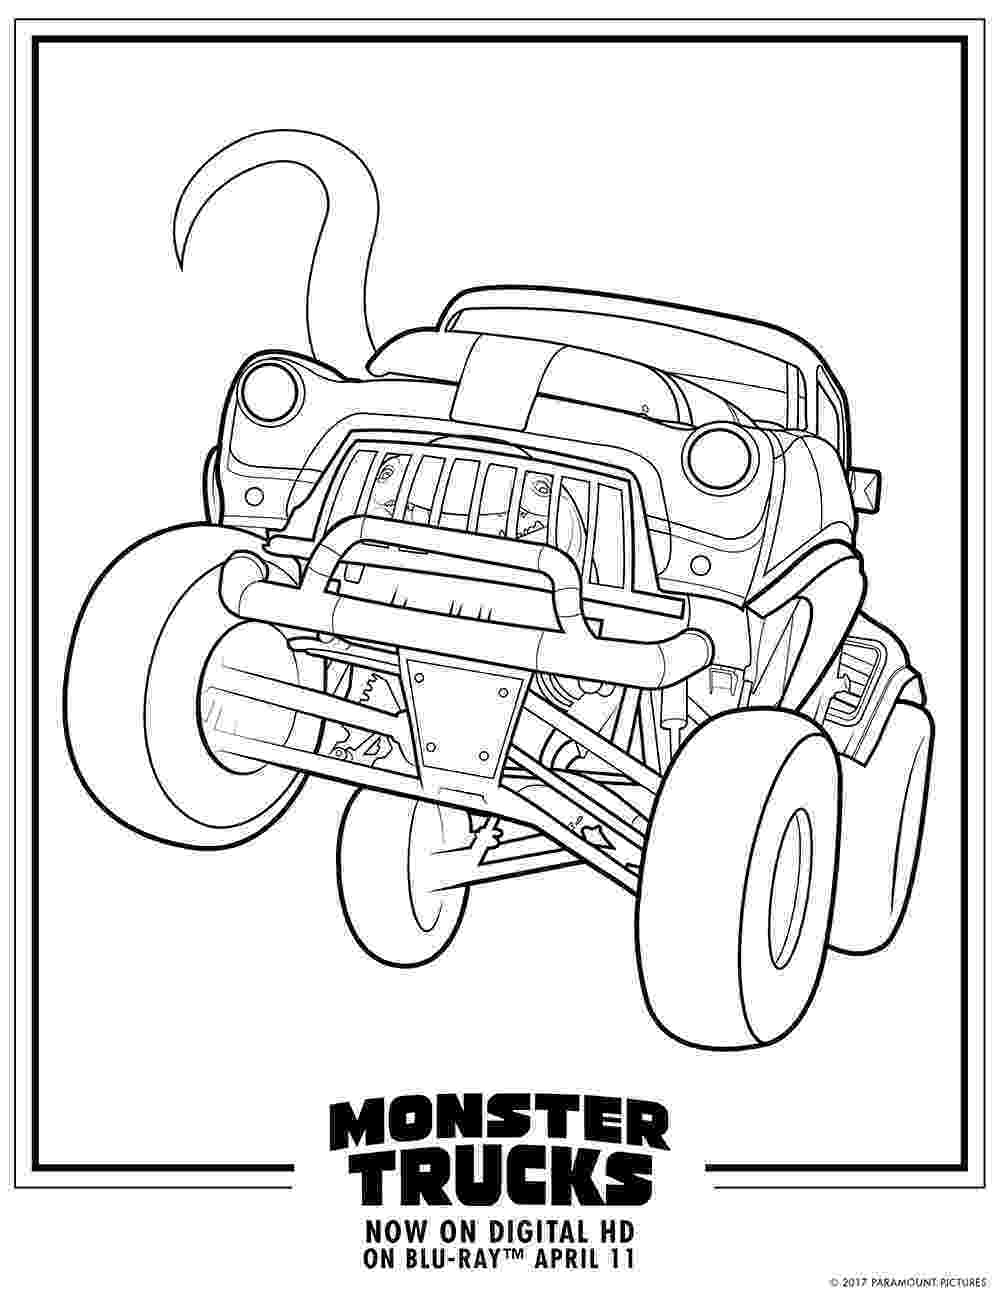 color monster trucks monster trucks printable coloring pages all for the boys monster color trucks